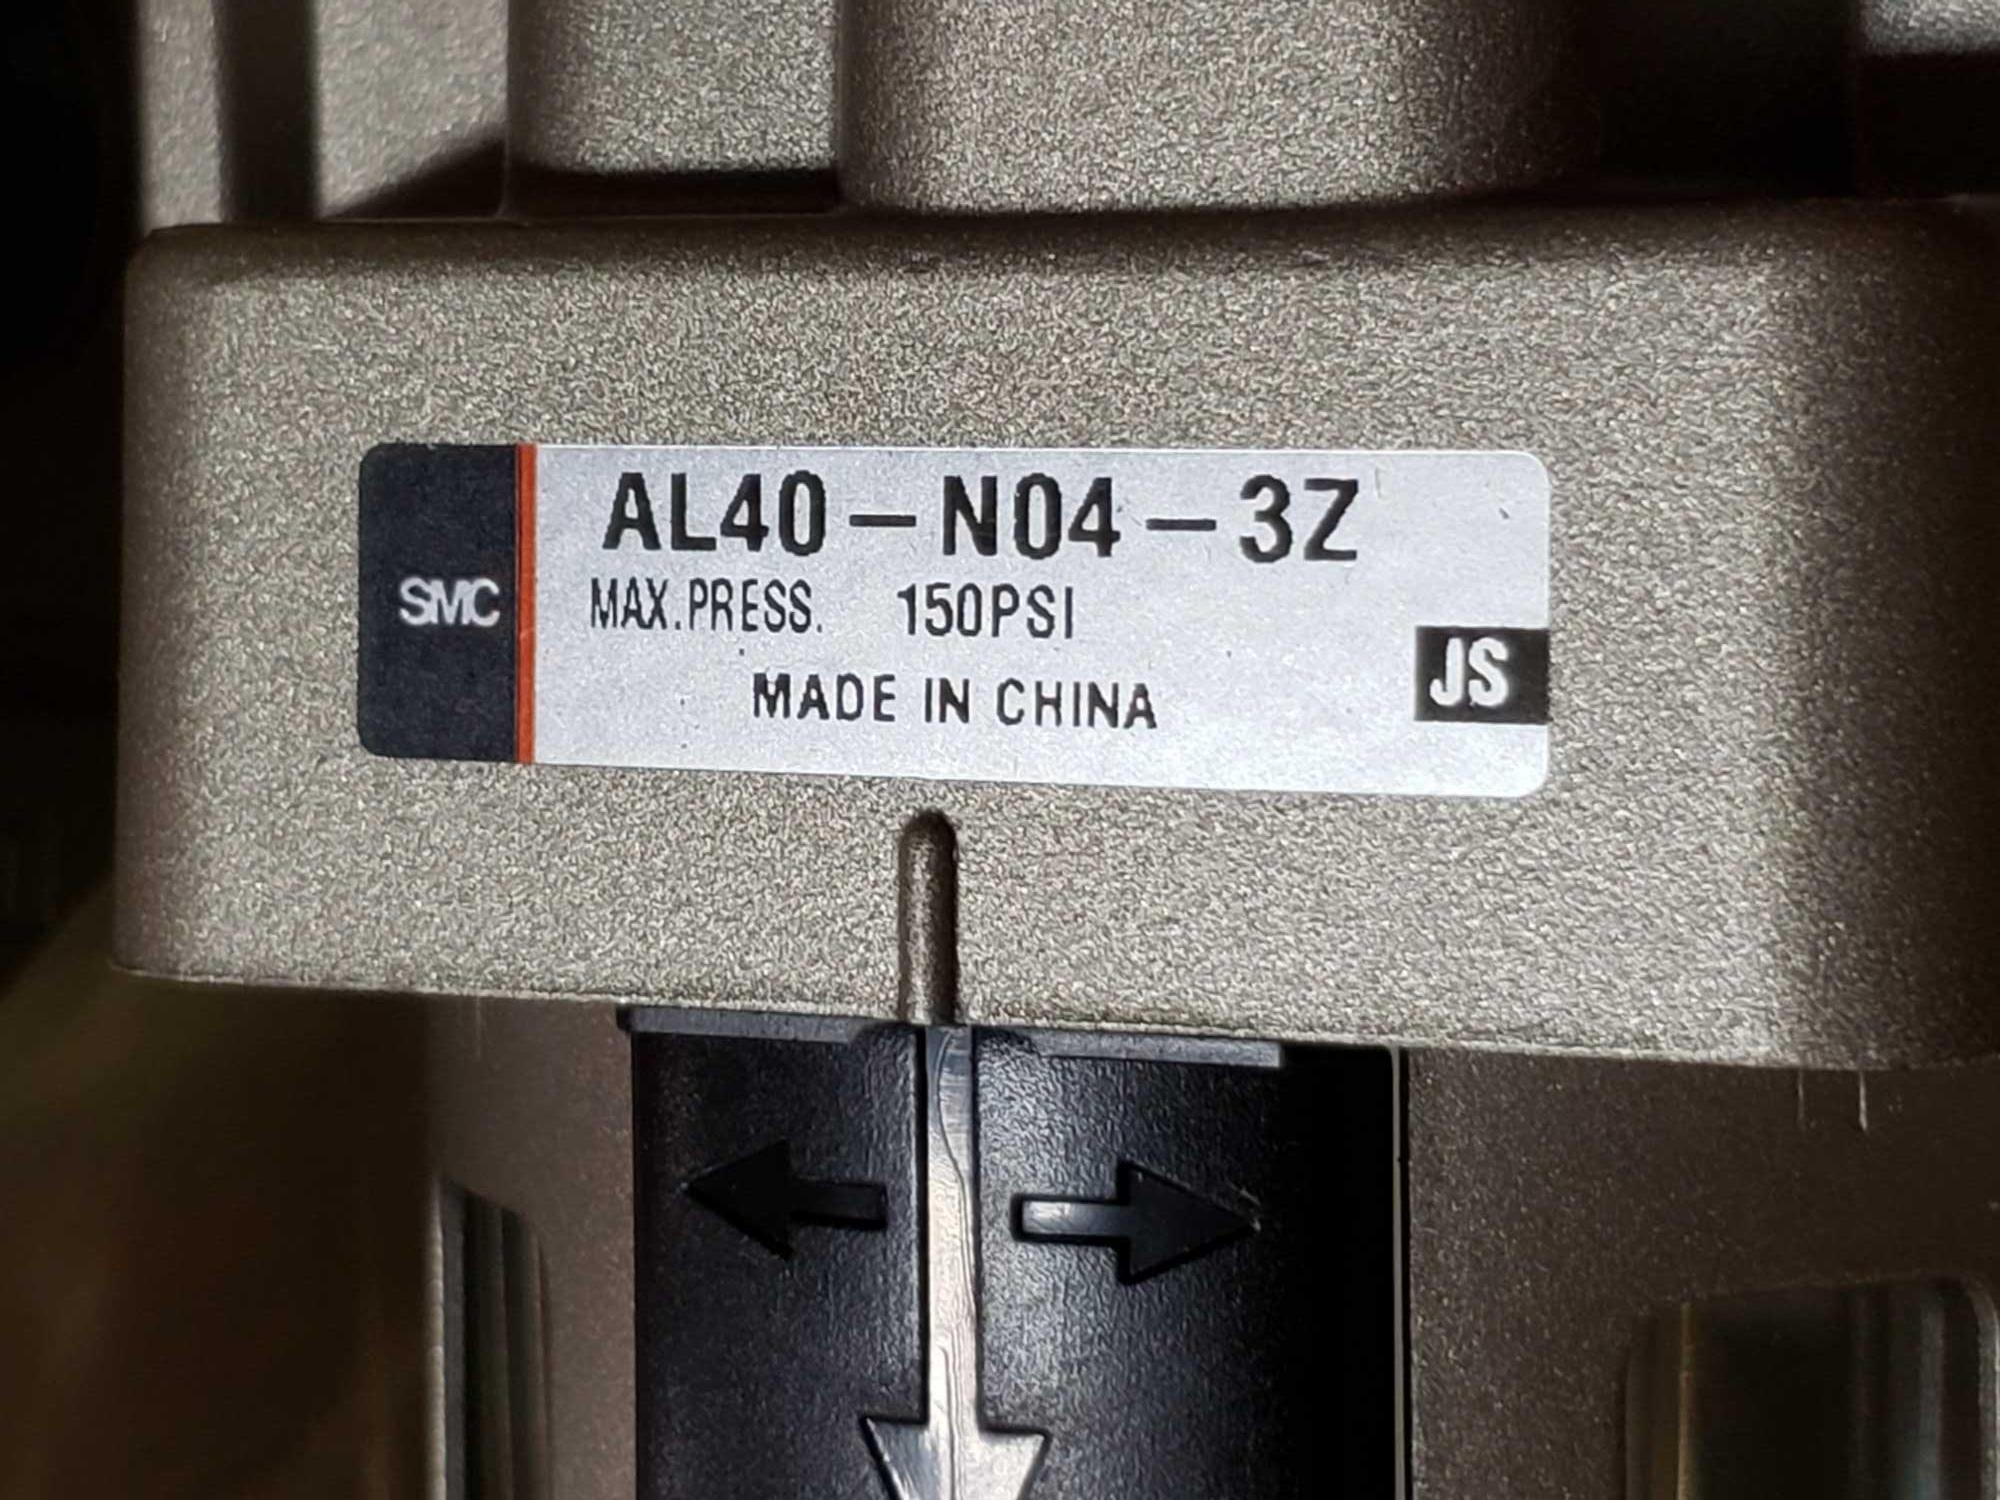 Lot 9 - Qty 3 - SMC filter housing model AL40-N04-3Z. New as pictured.